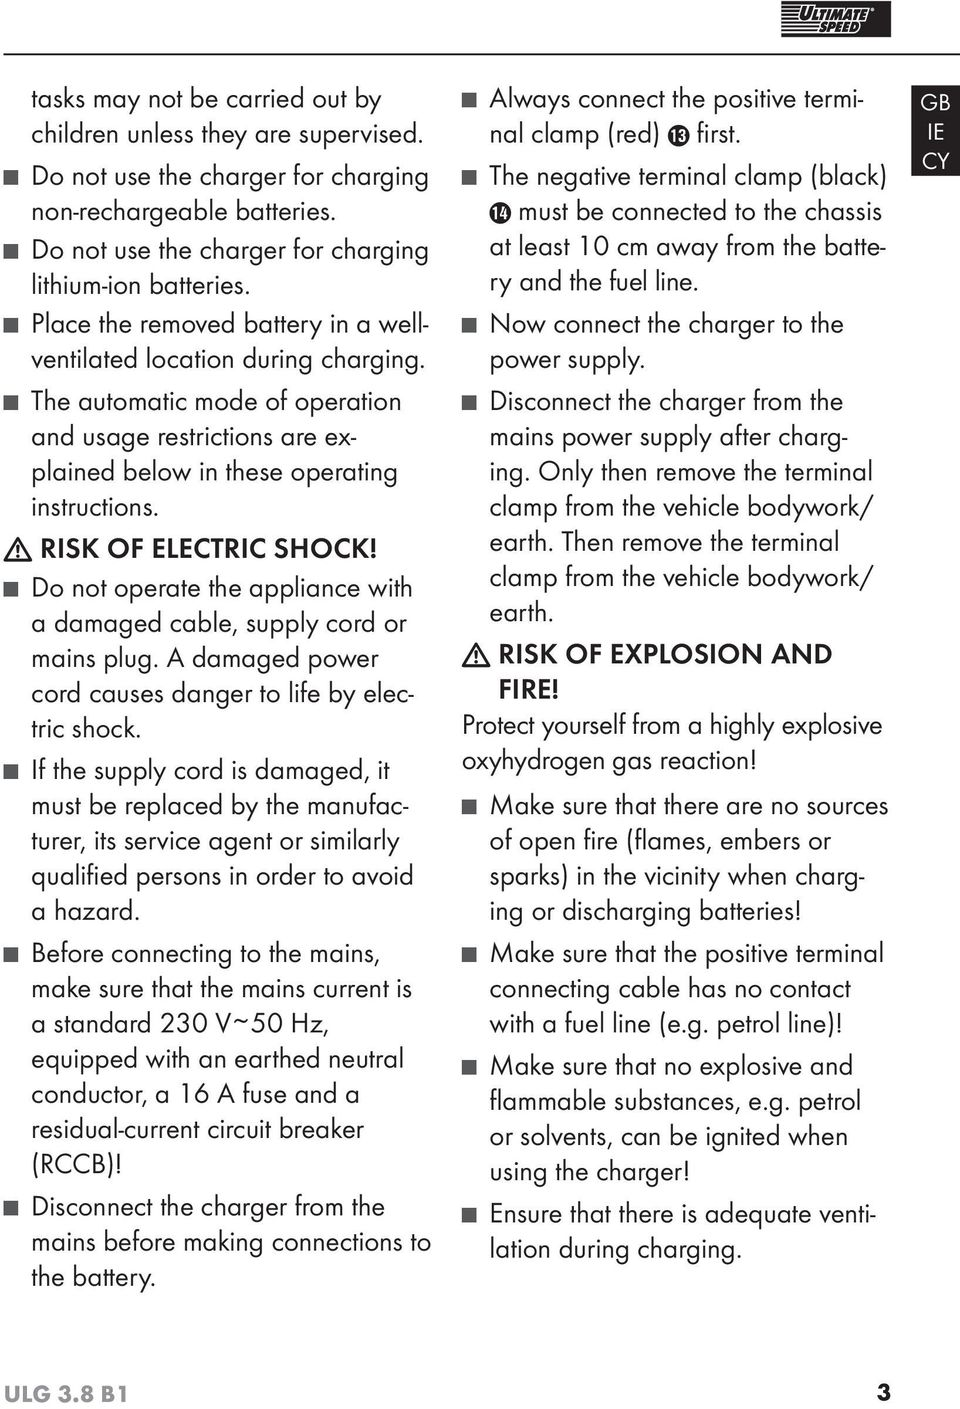 RISK OF ELECTRIC SHOCK! Do not operate the appliance with a damaged cable, supply cord or mains plug. A damaged power cord causes danger to life by electric shock.